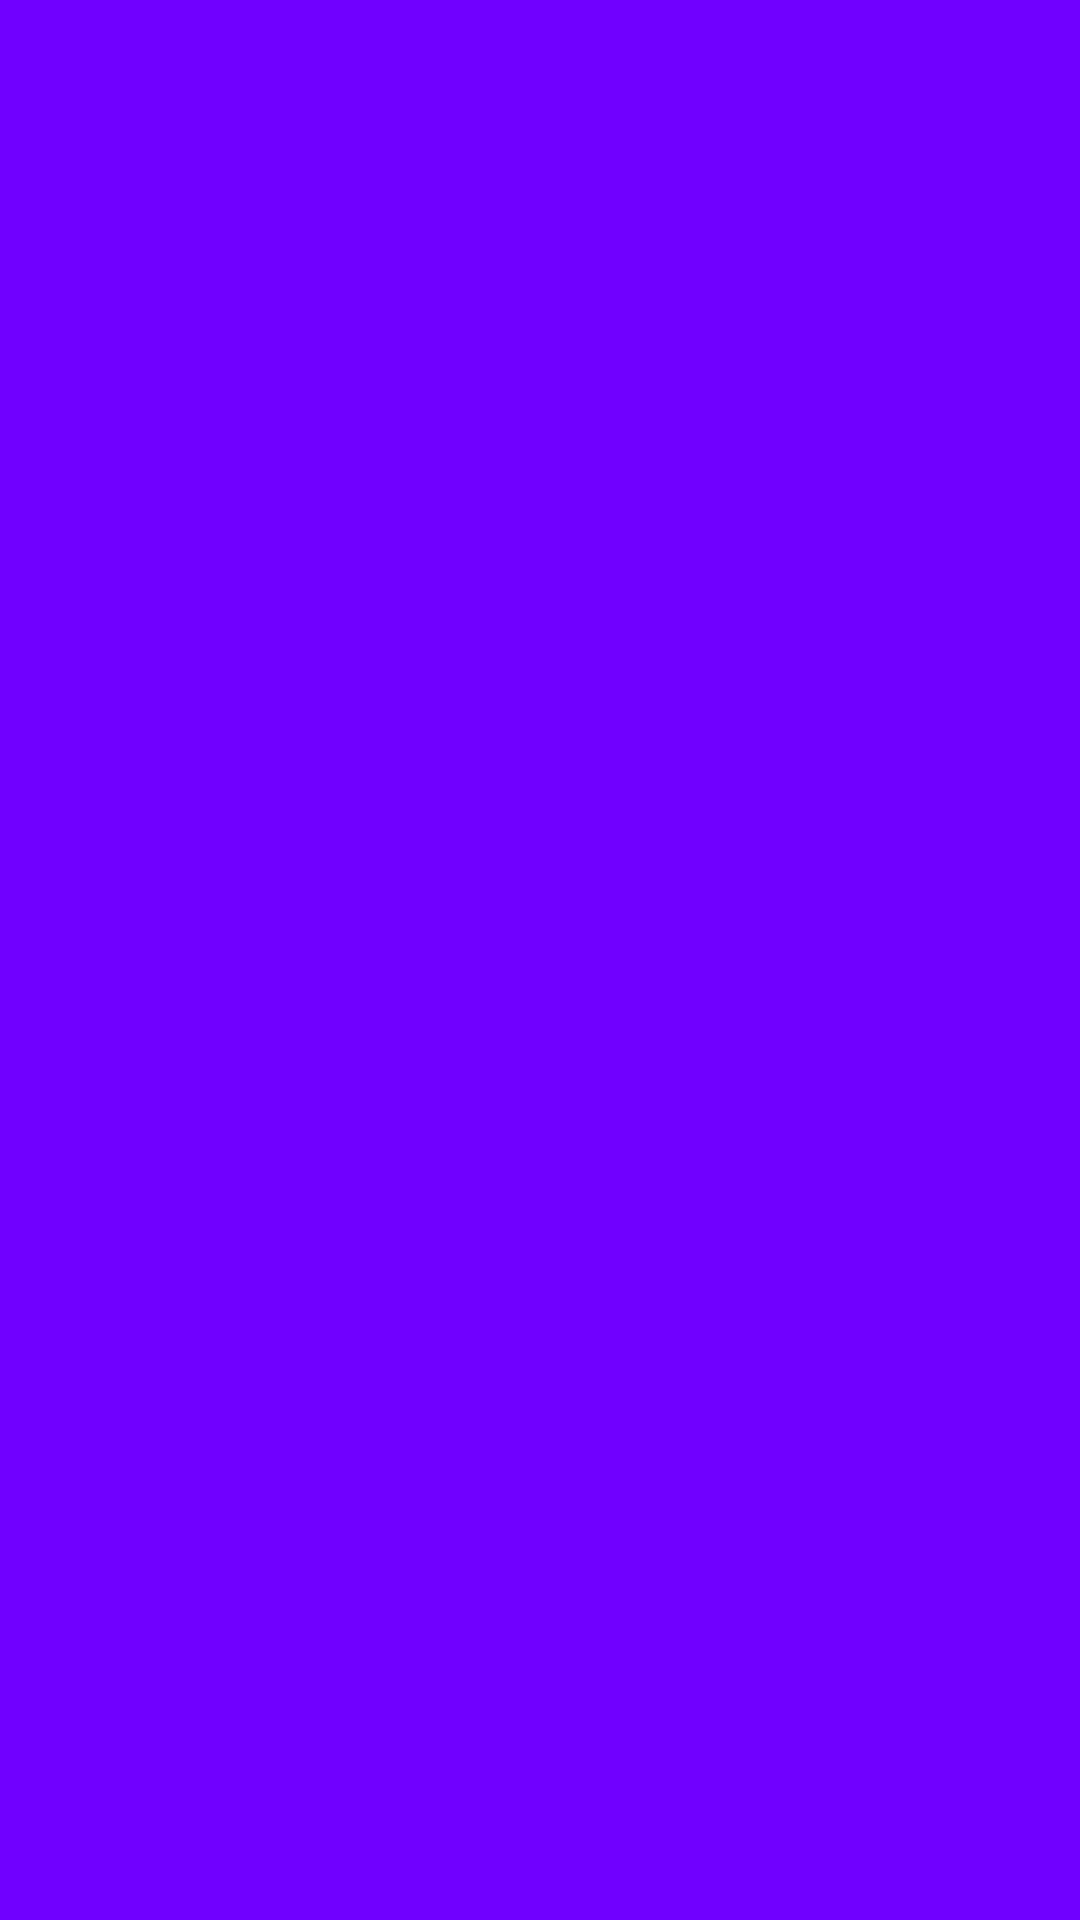 1080x1920 Indigo Solid Color Background